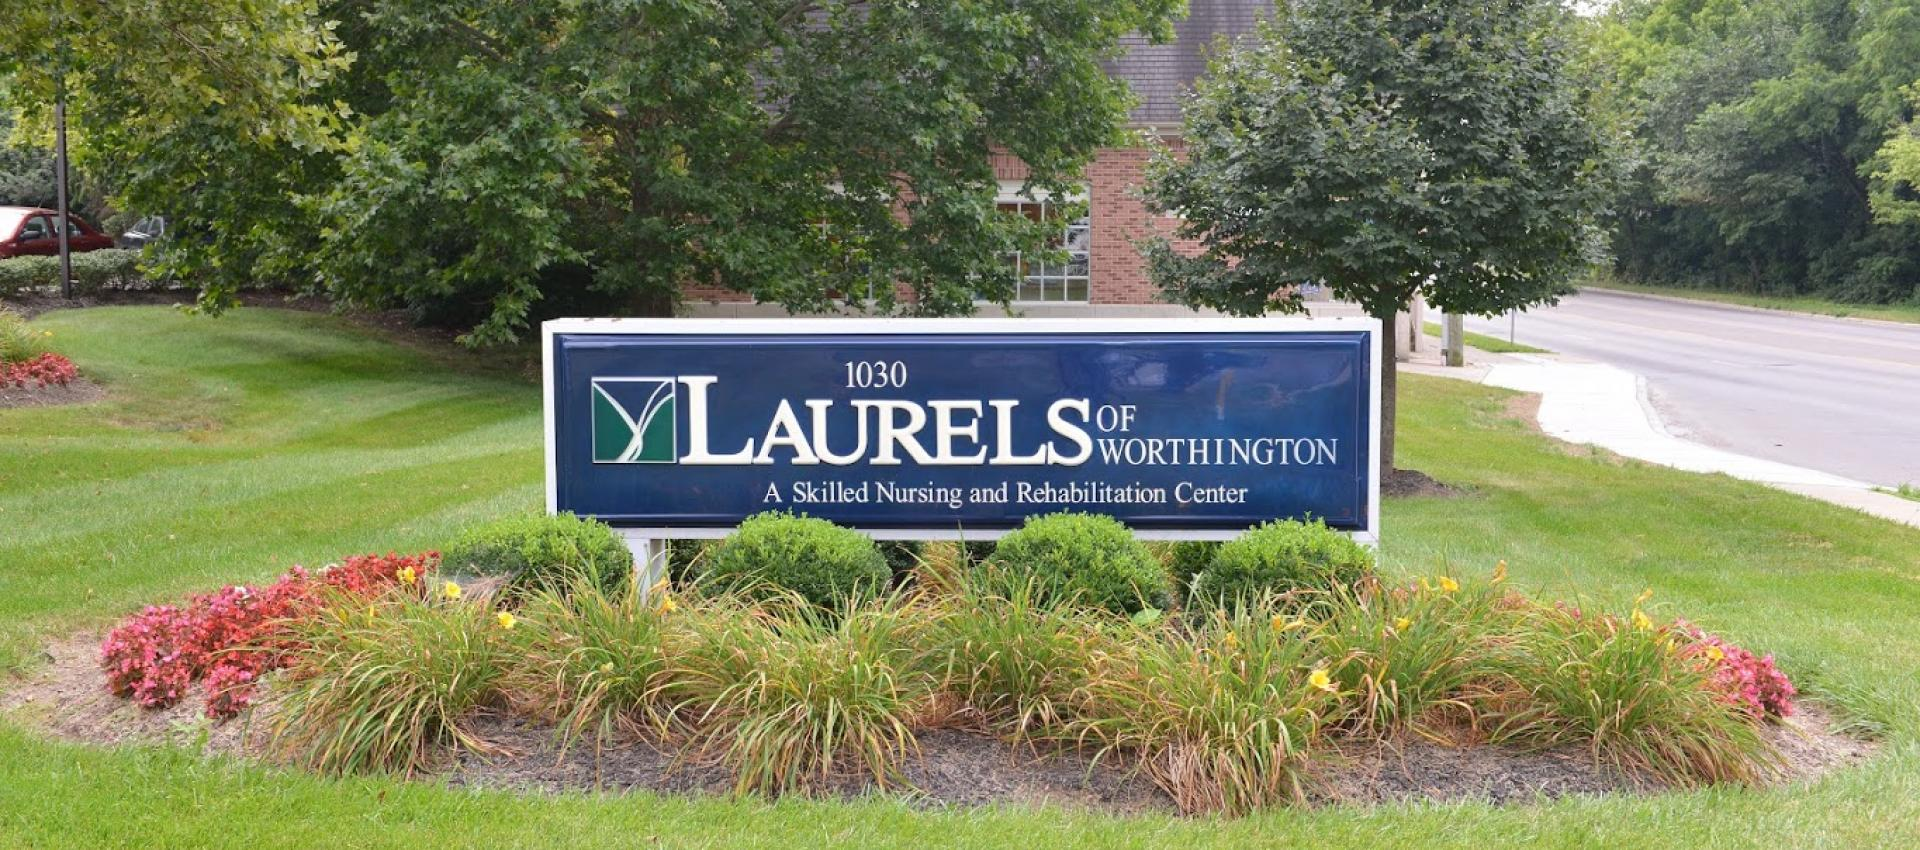 The Laurels of Worthington